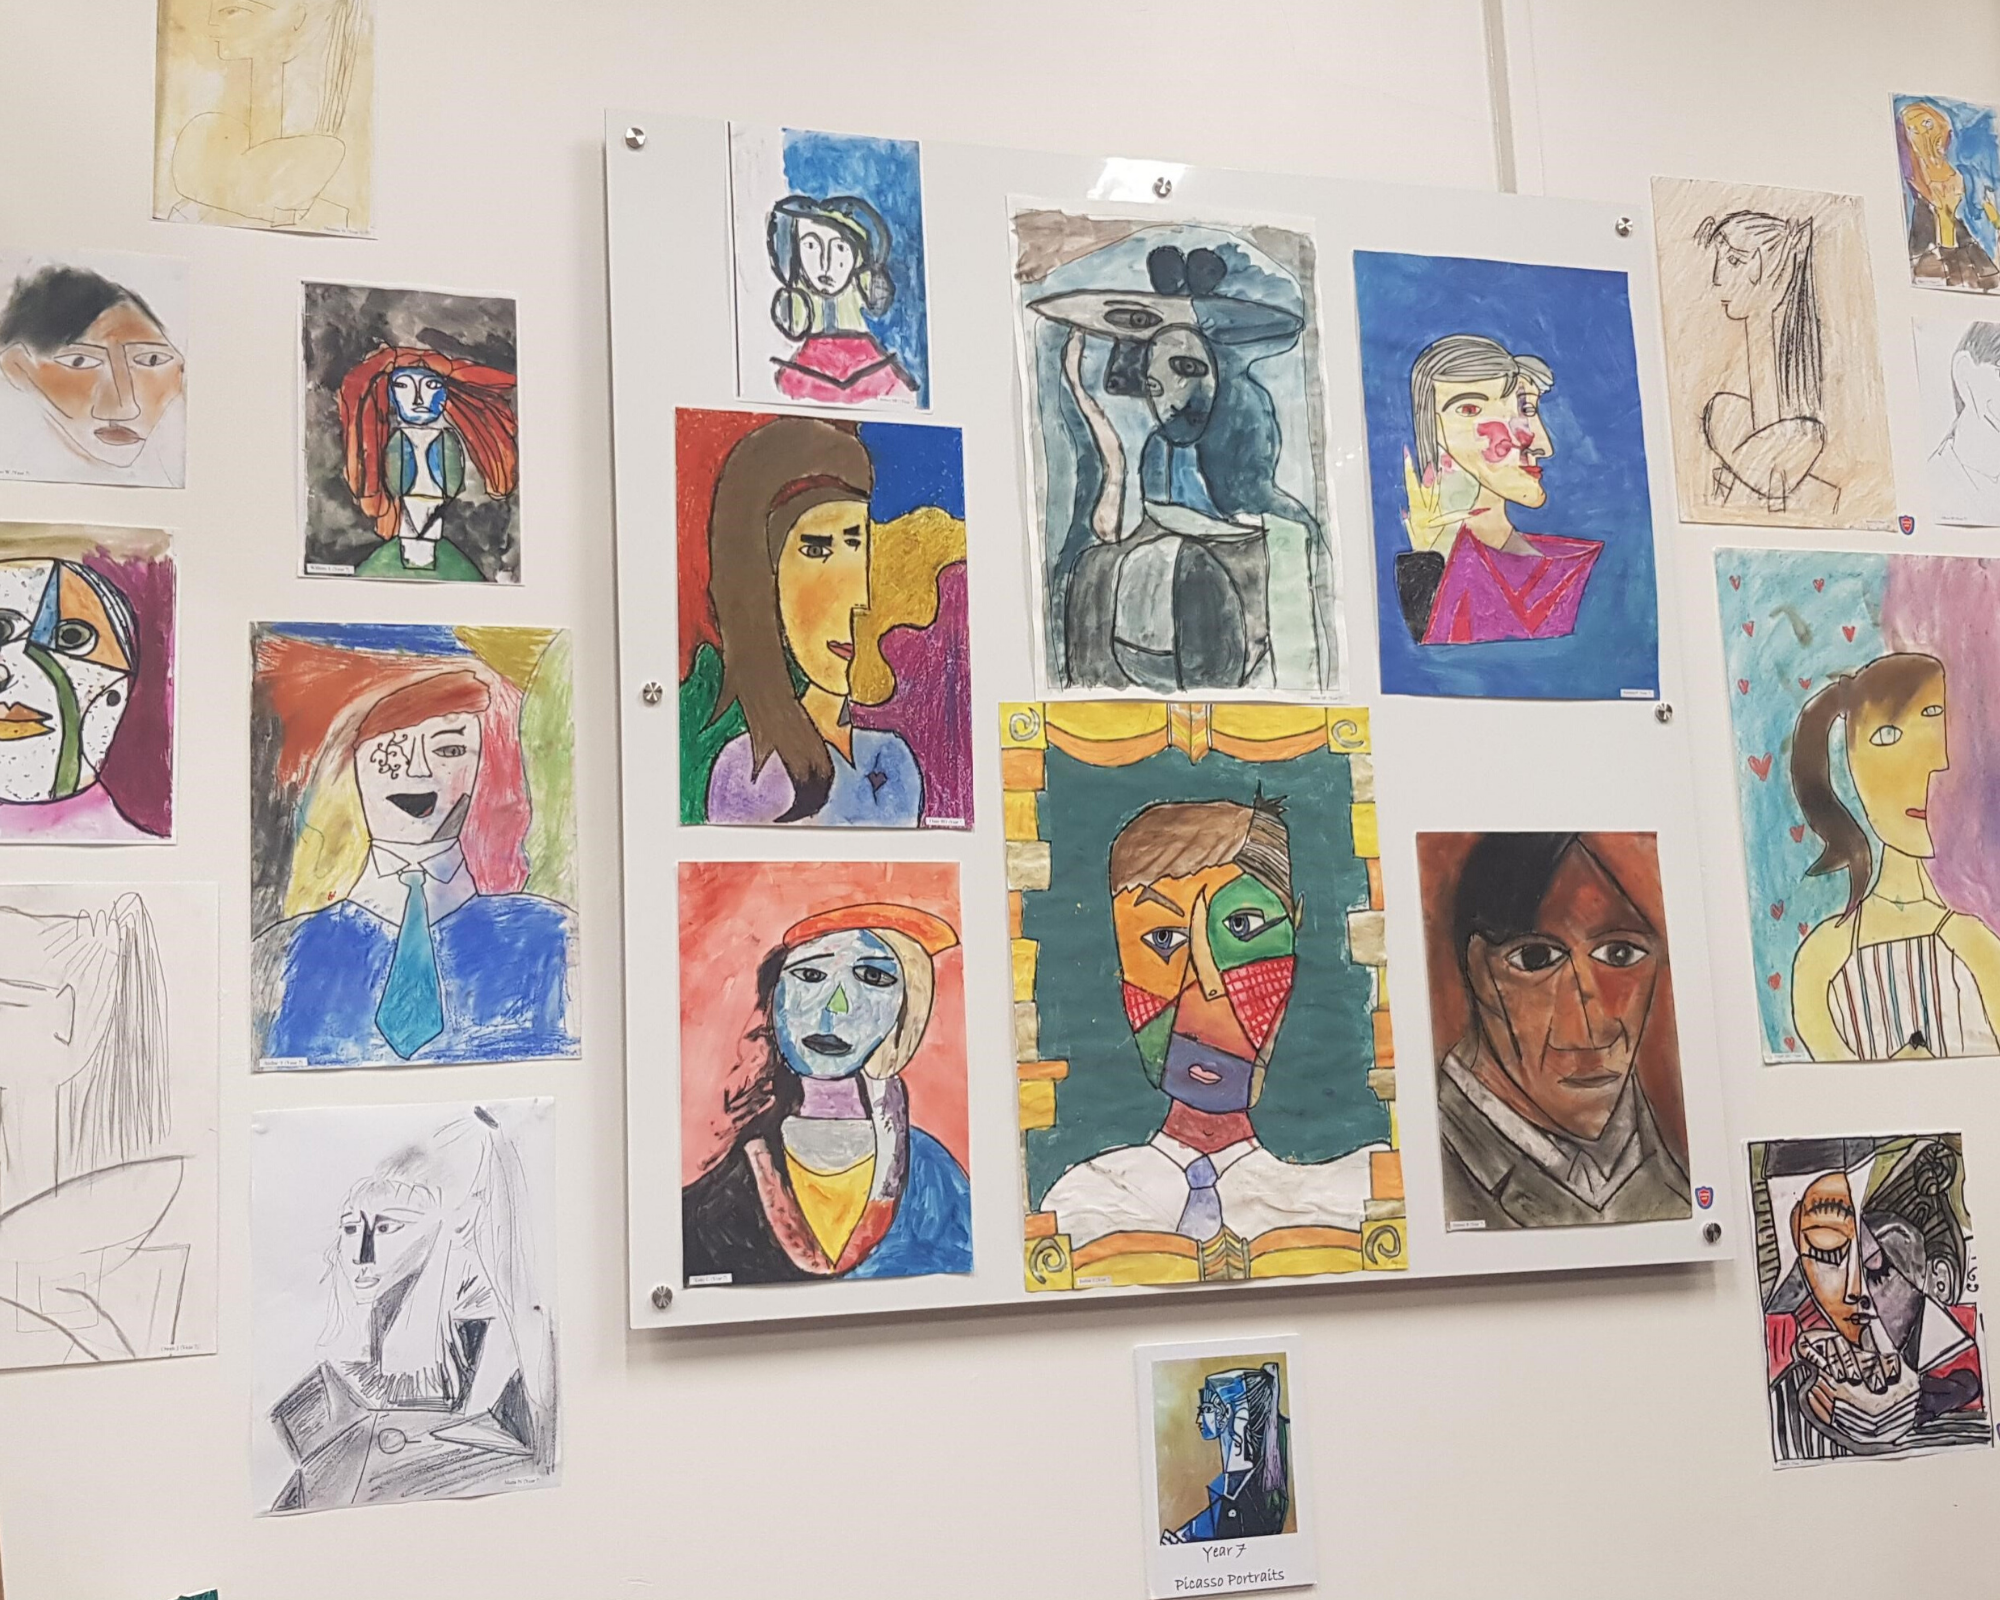 Exeter Cathedral School's Big Art Show: A Portrait of Co-education